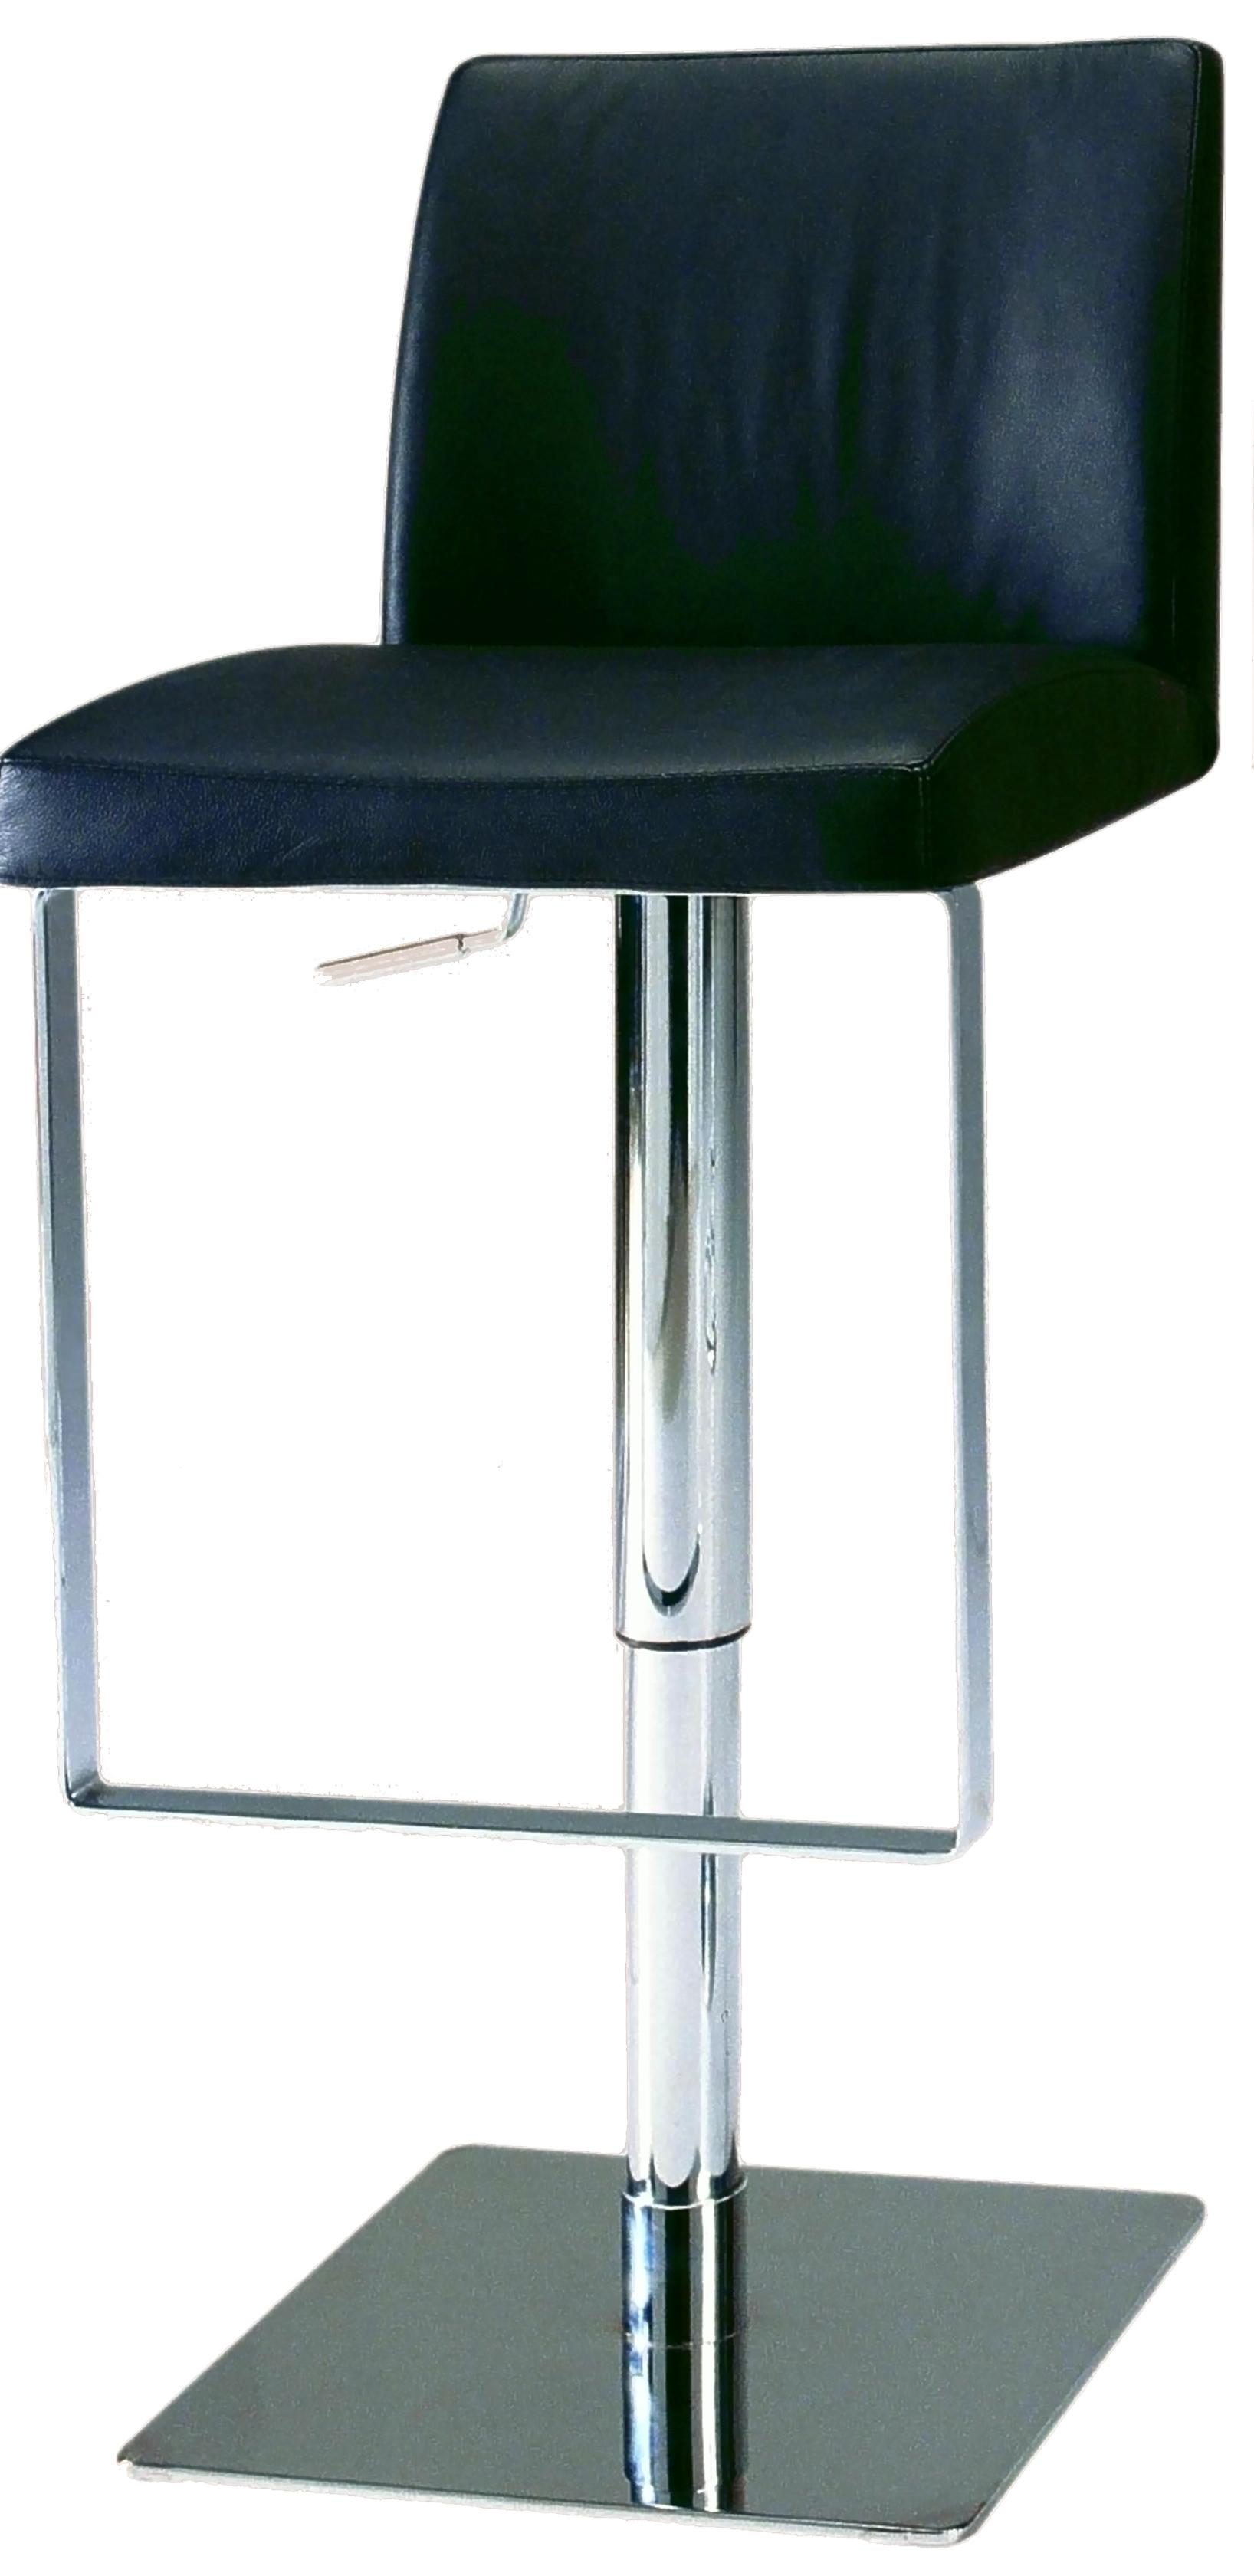 800 Adjustable Height Swivel Stool by Chintaly Imports at Nassau Furniture and Mattress